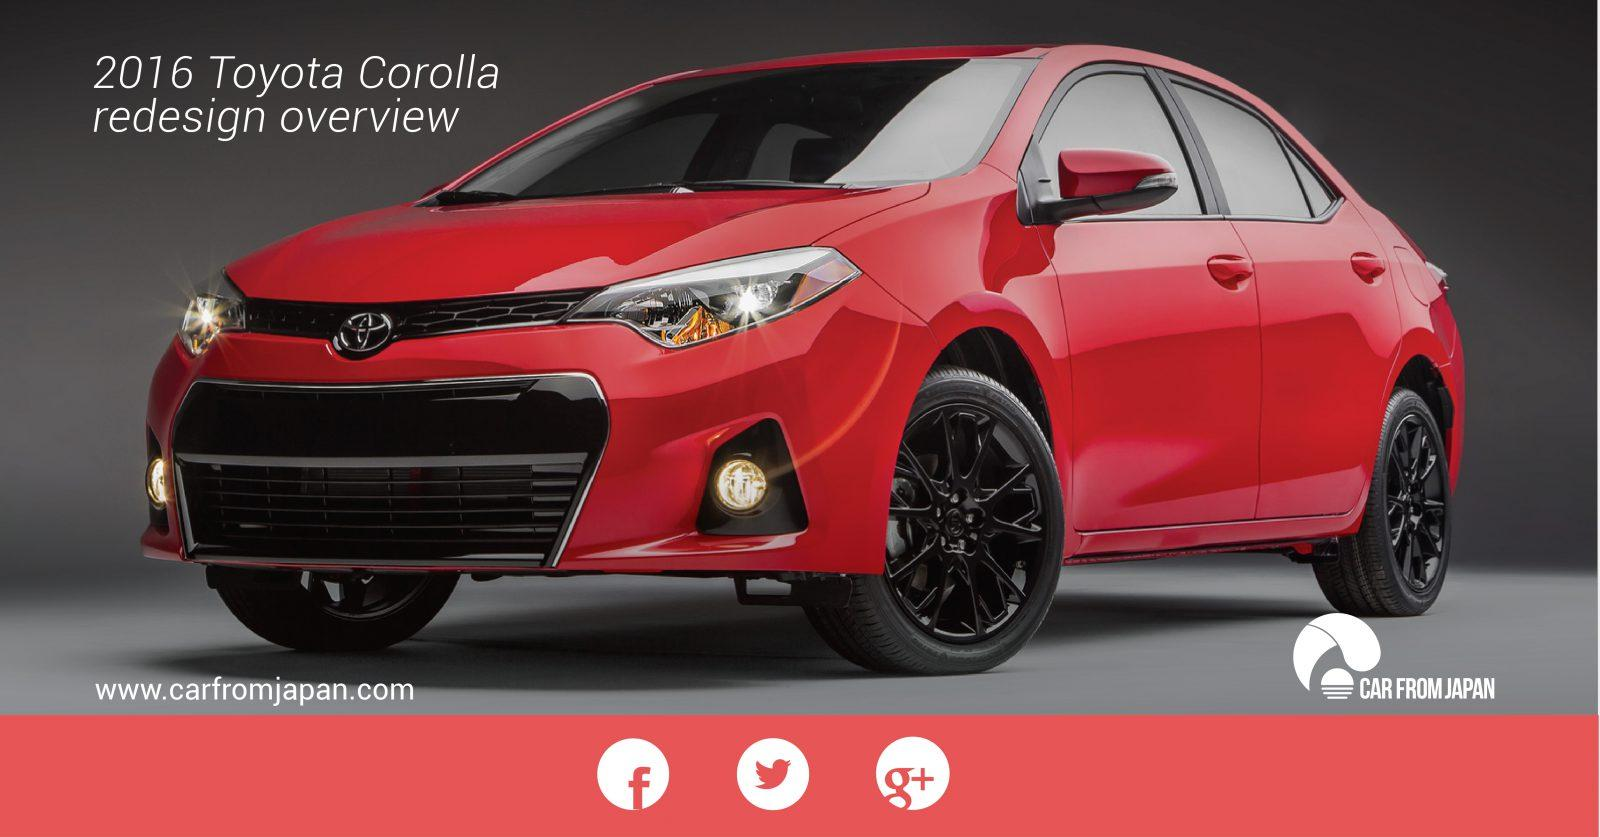 easily article s indeed there duds are special love most these freehold trim lot guise as and in l sleek especially new is visually the review a toyota to about dch corolla edition